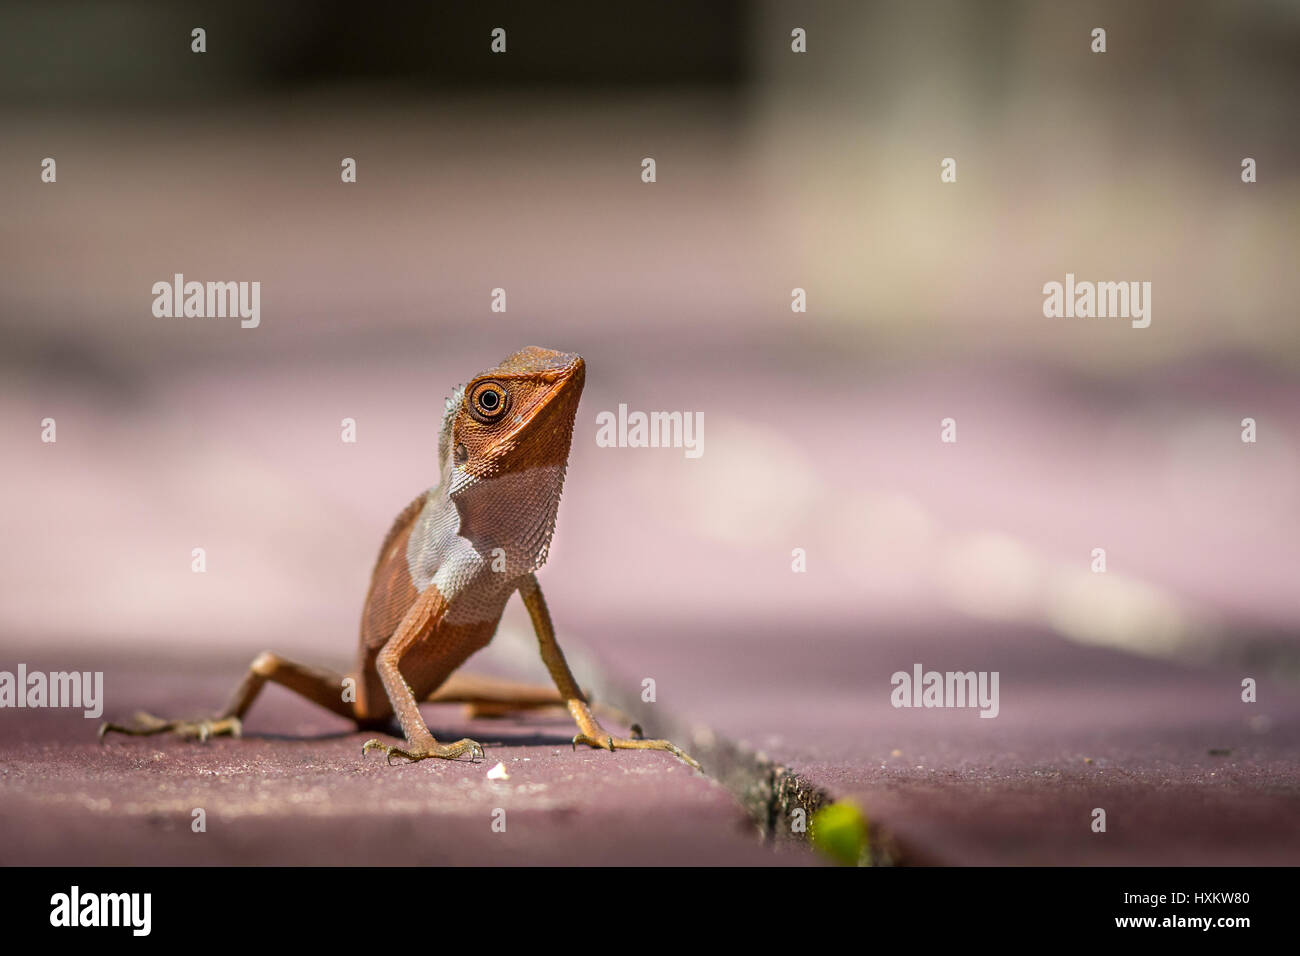 Close up of a lizard looking frooze in position at Mulu National Park, Borneo. - Stock Image